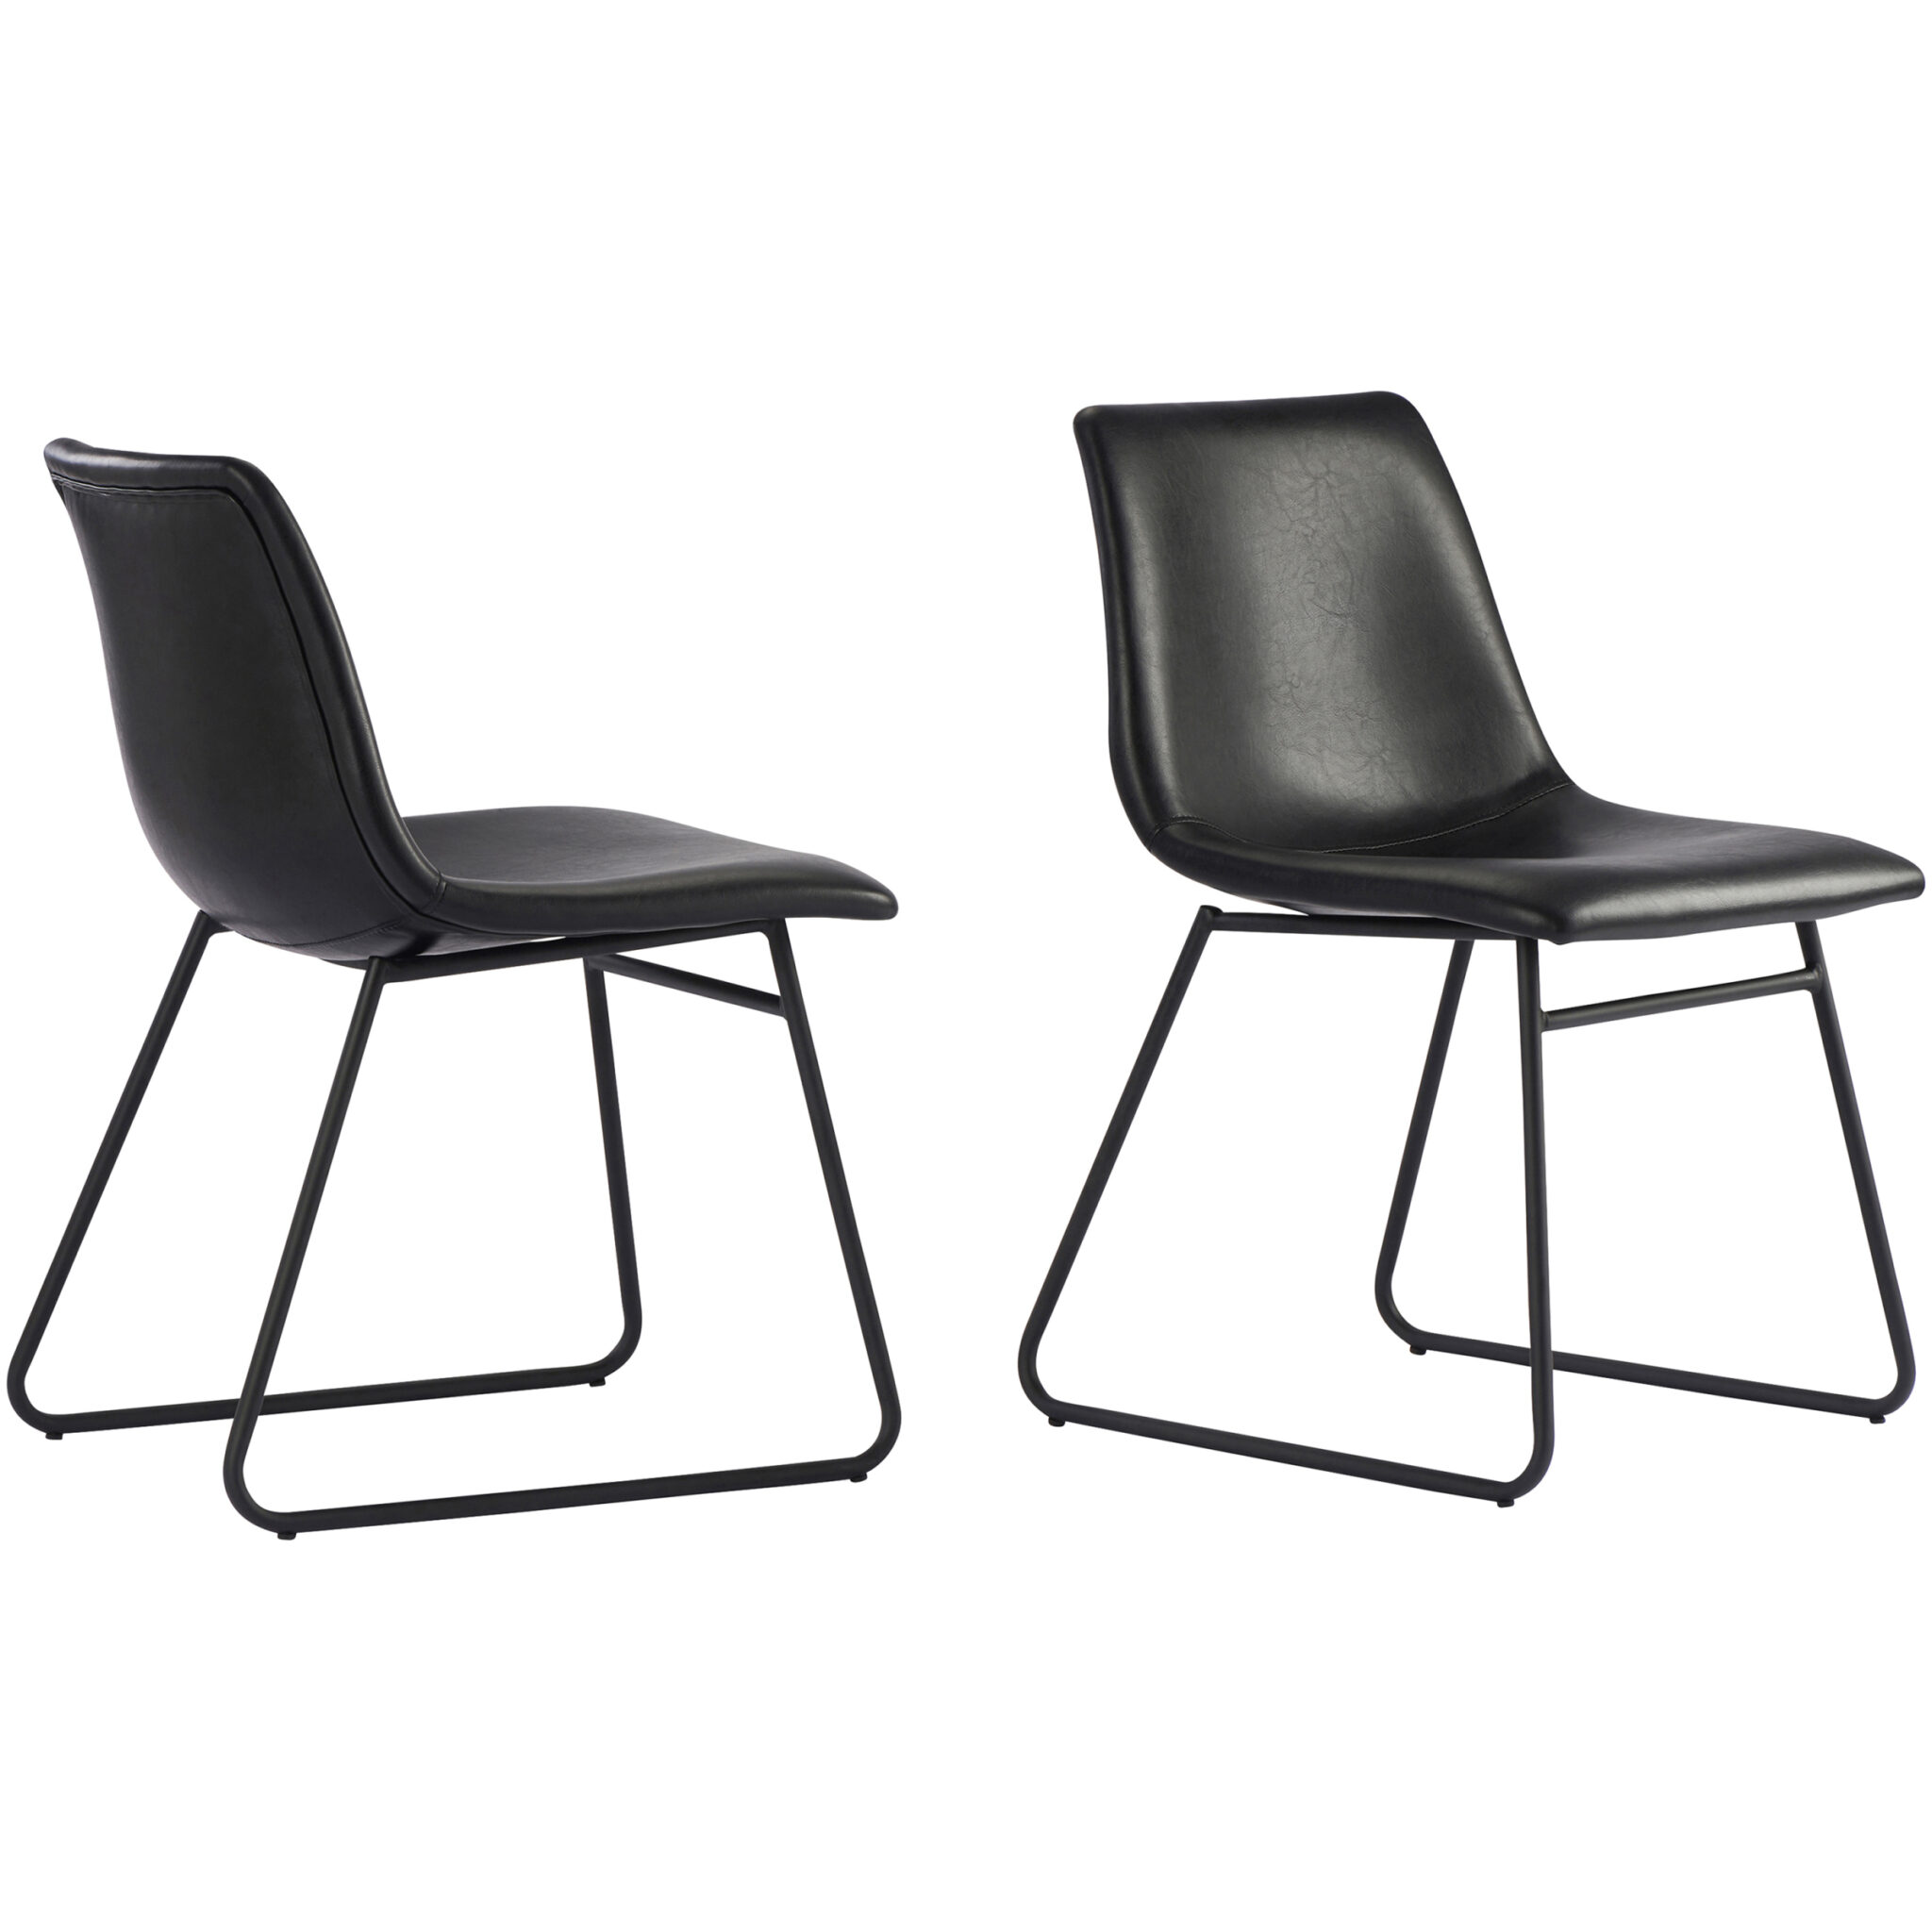 Better Homes & Gardens Theodore Dining Chairs, Set of 2, Black $104.99